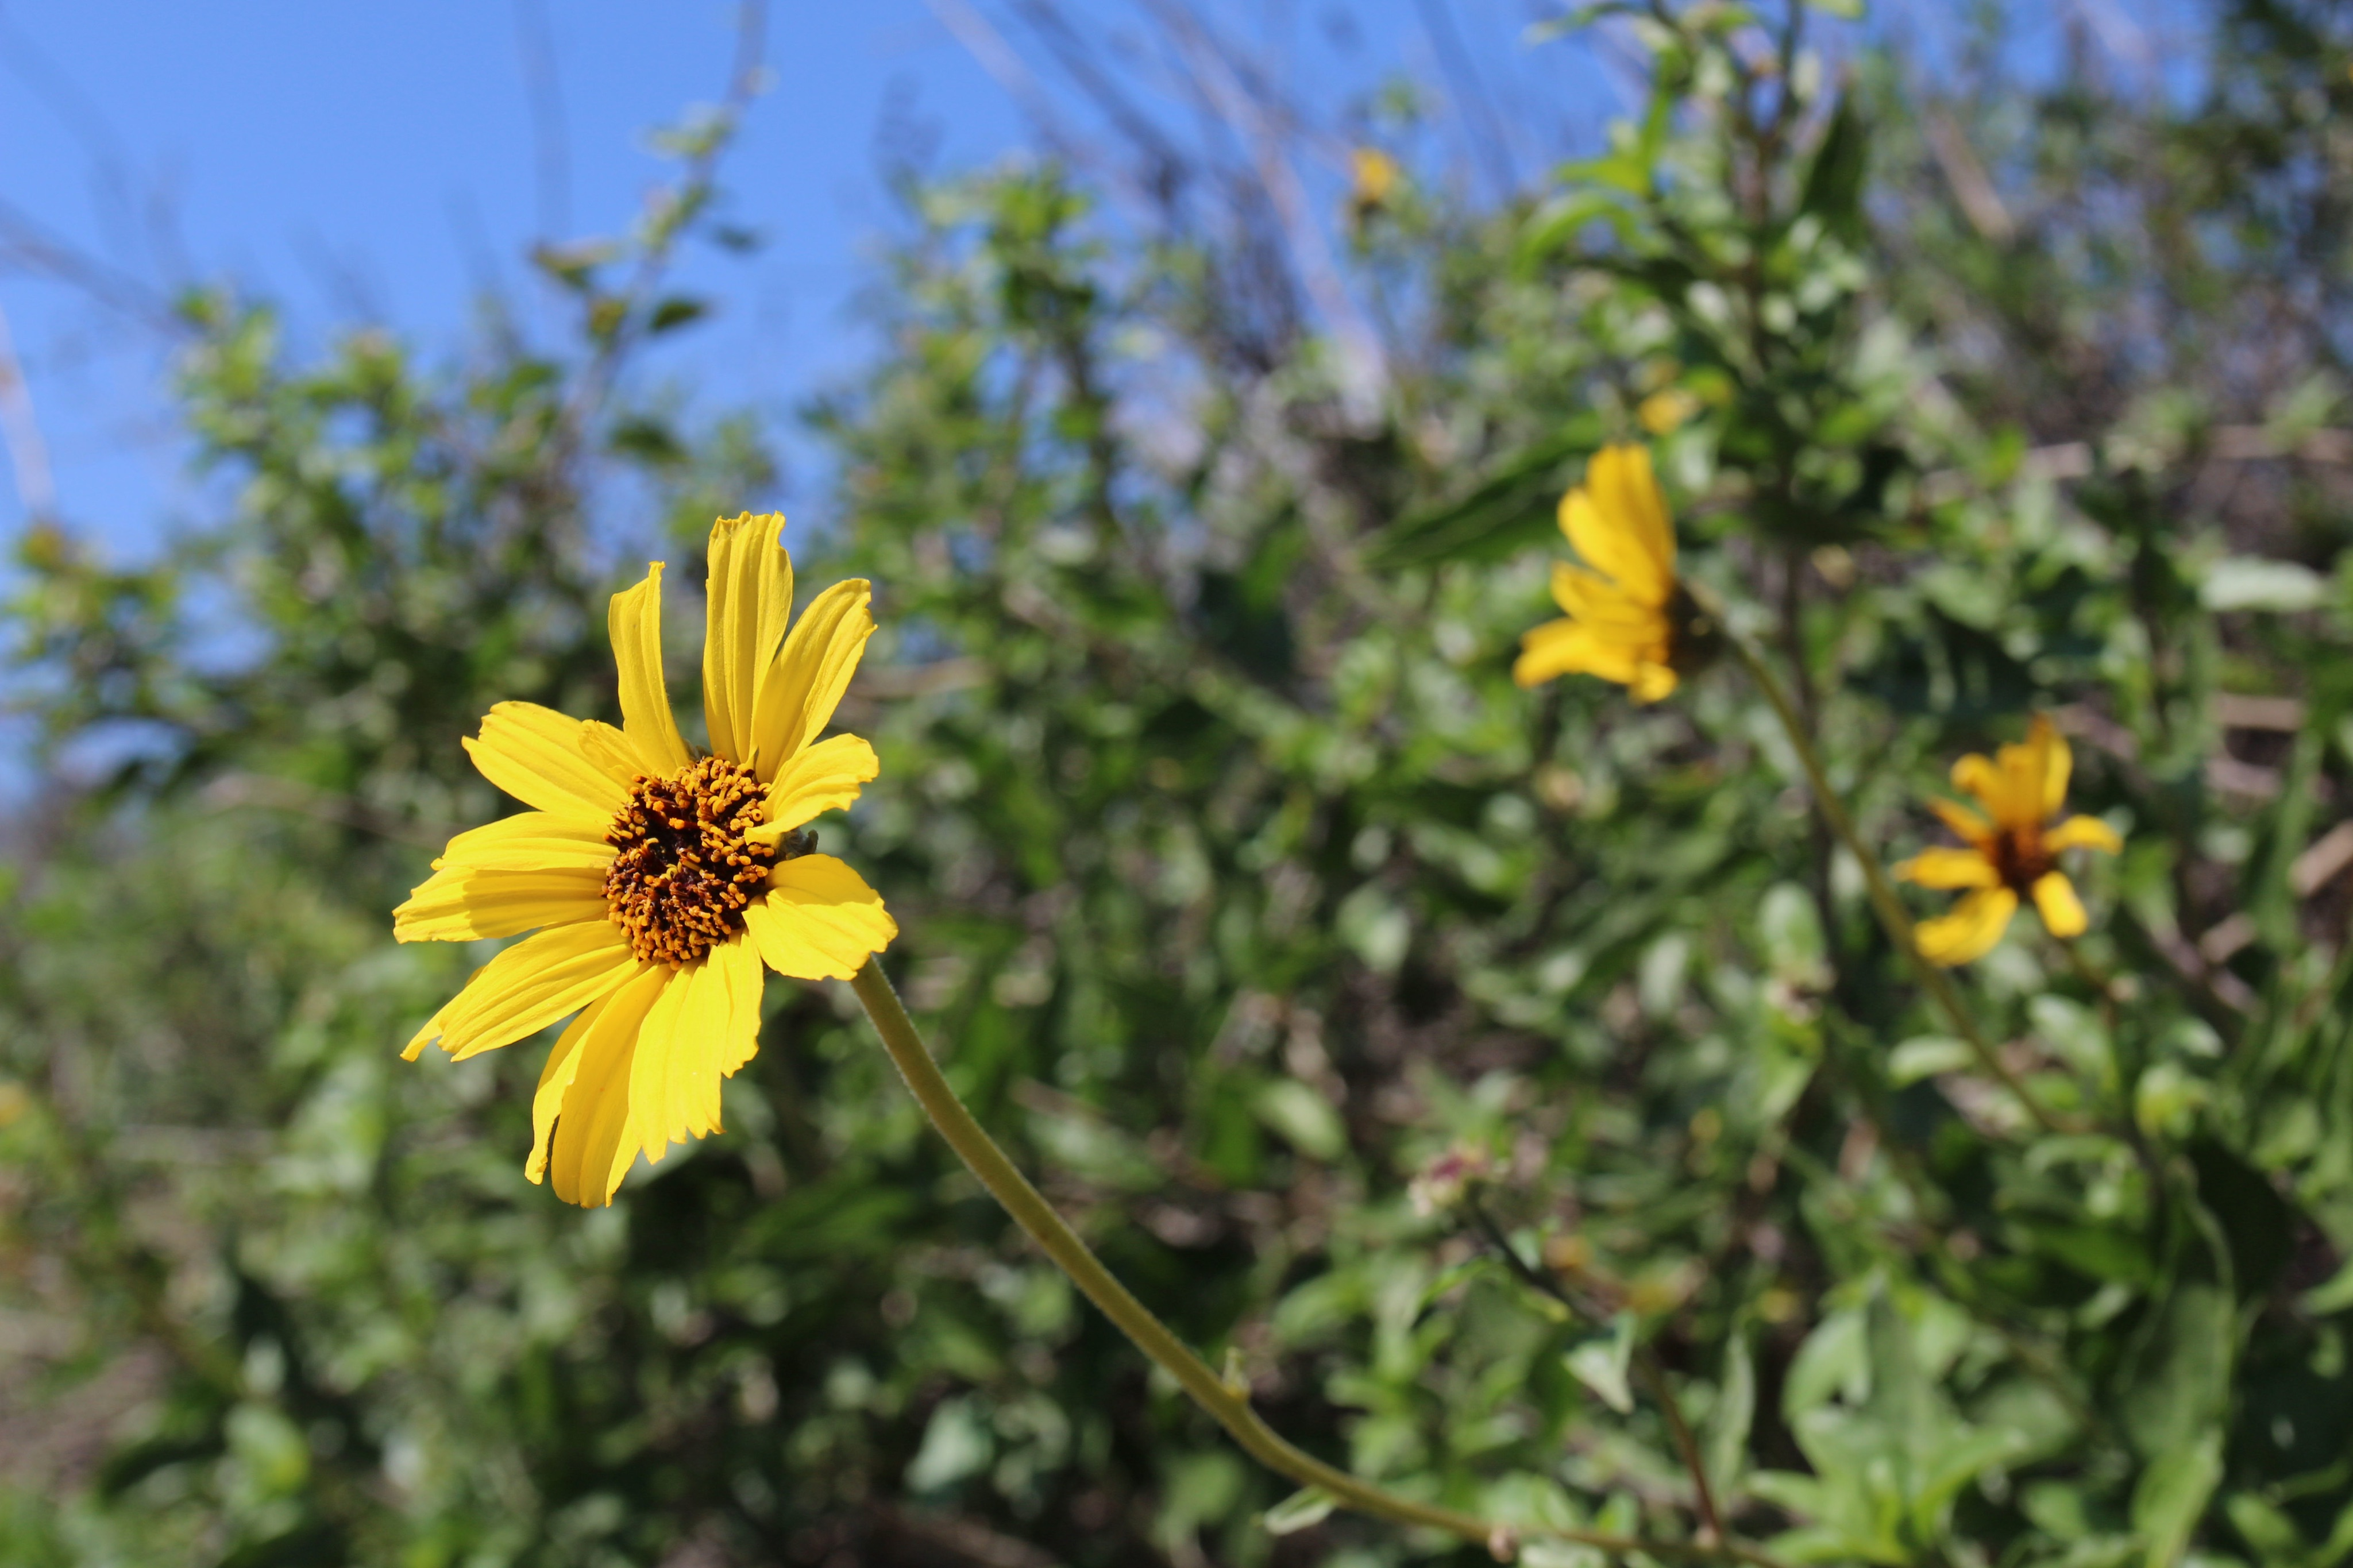 Wildflowers bloom along the trail